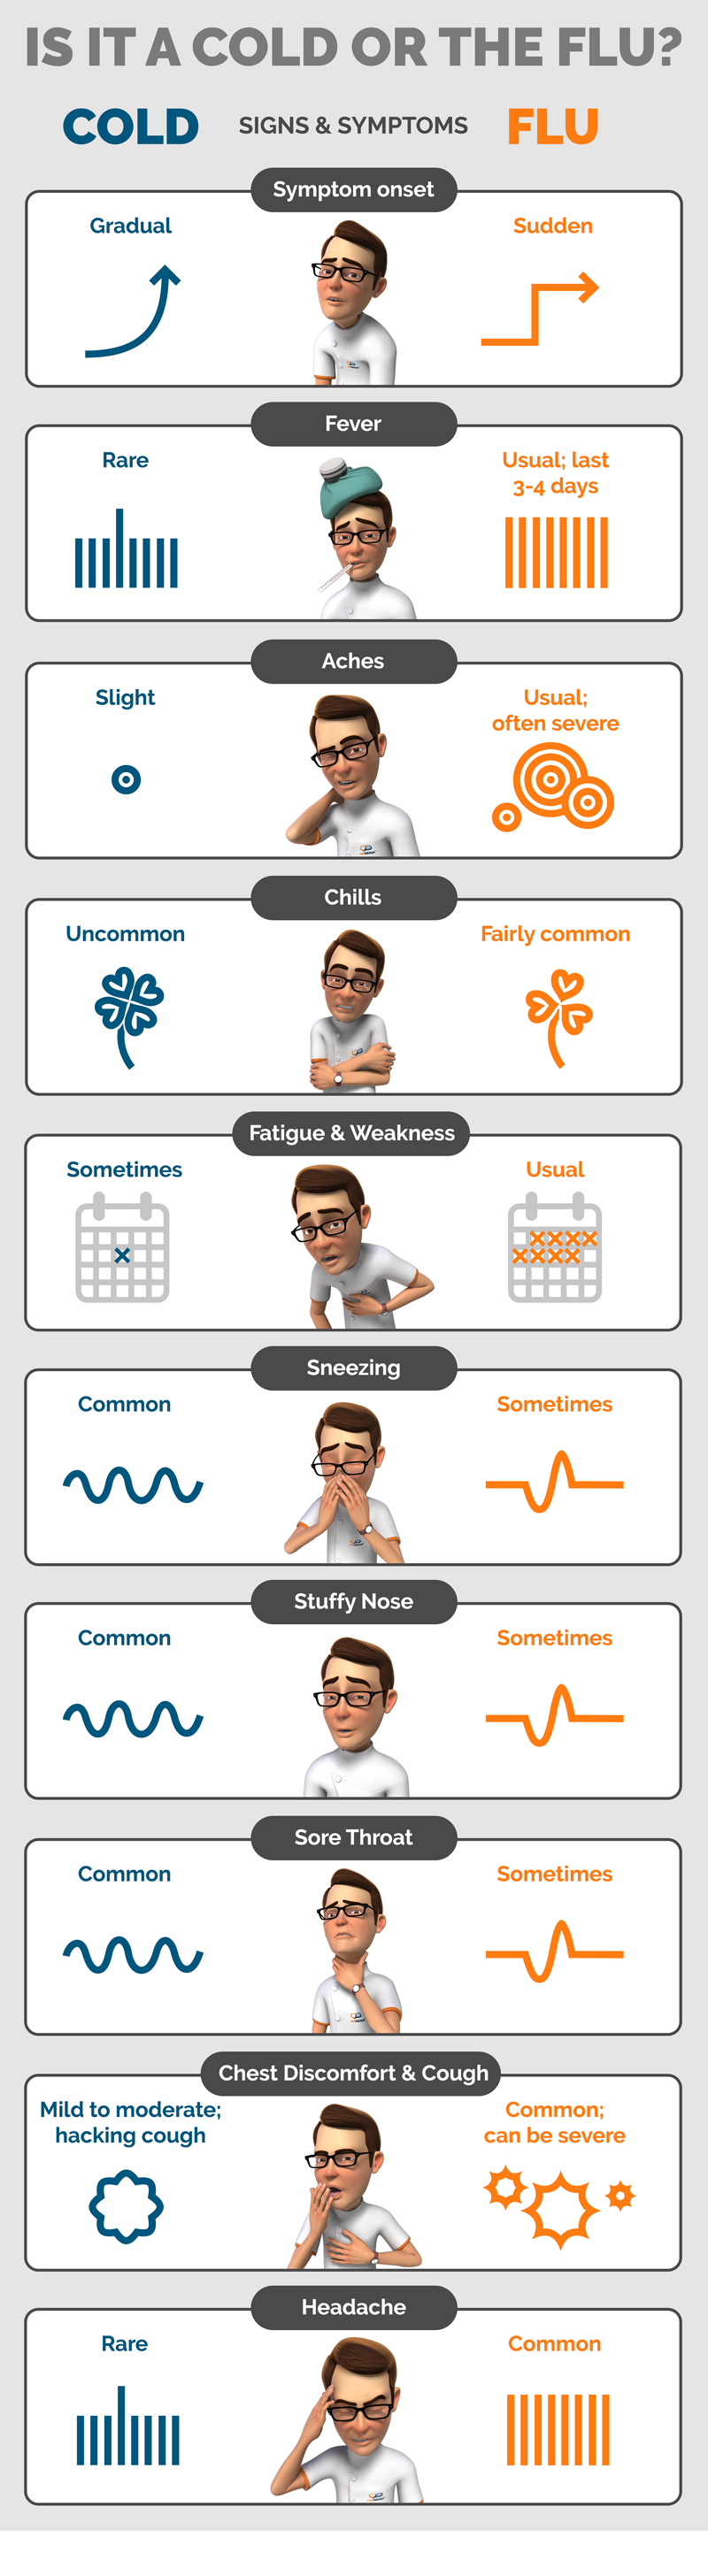 Cold_or_Flu_infographic